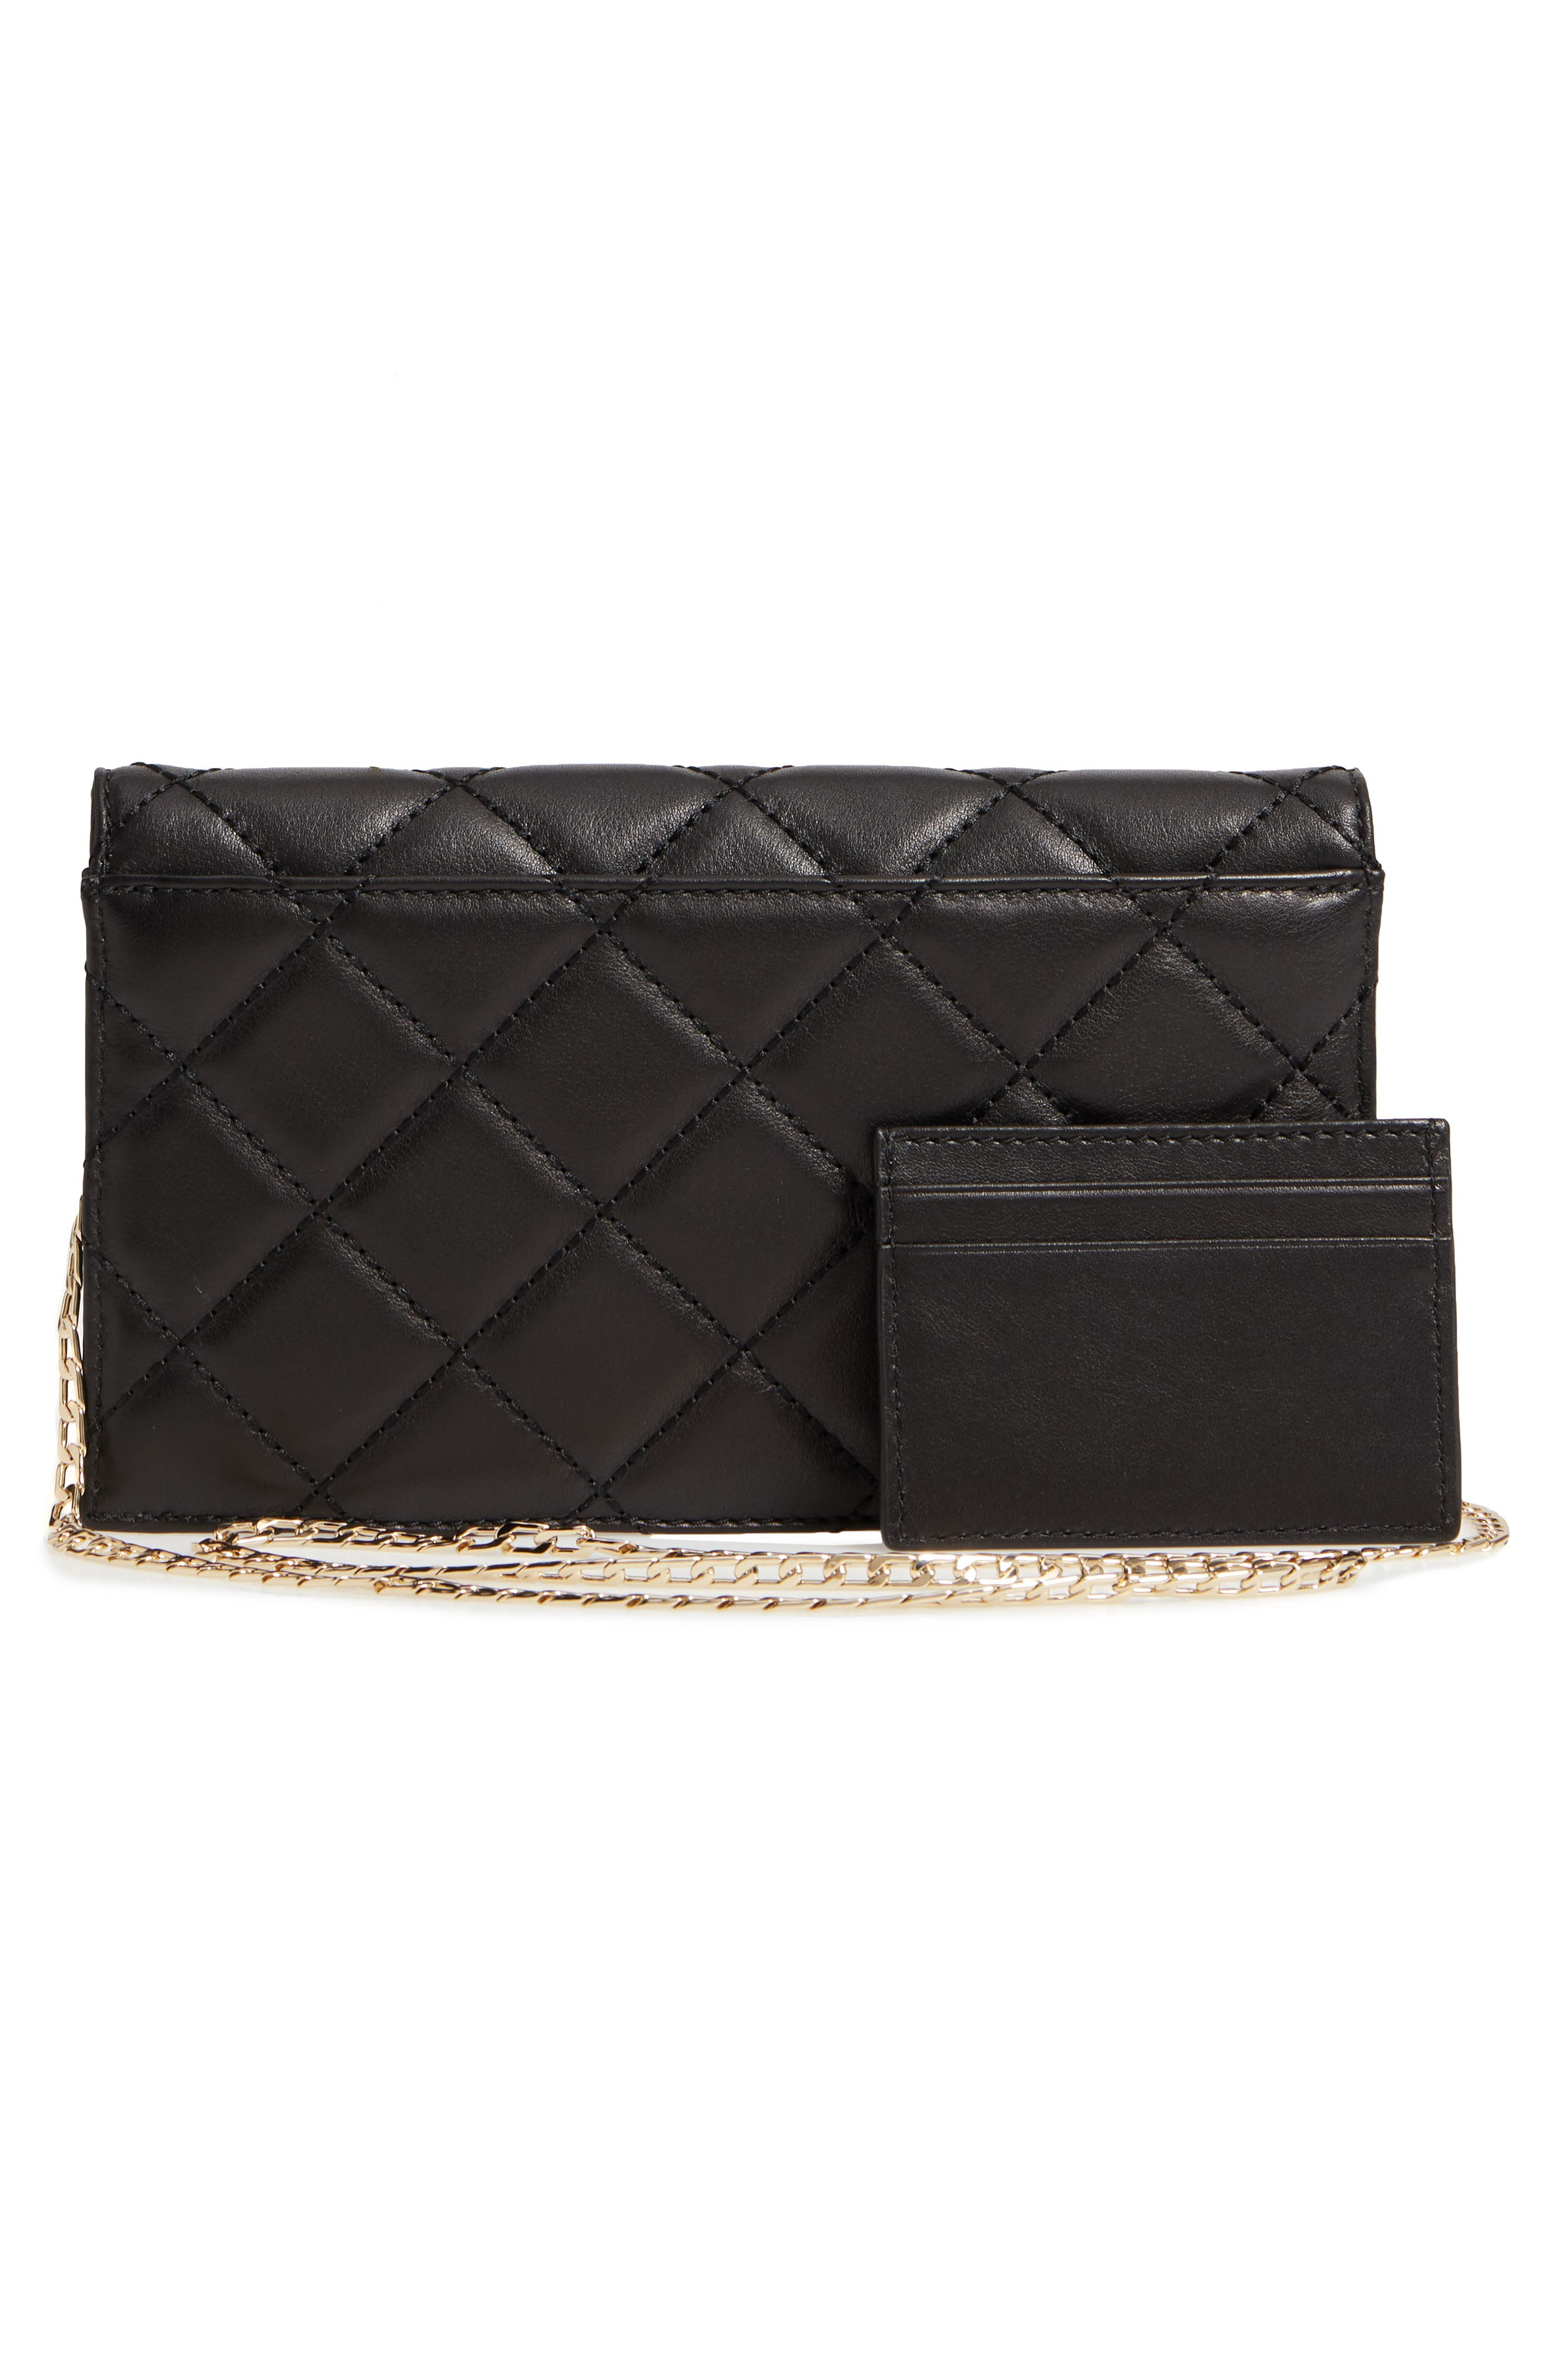 emerson place - brennan quilted leather convertible clutch & card holder,                             Alternate thumbnail 5, color,